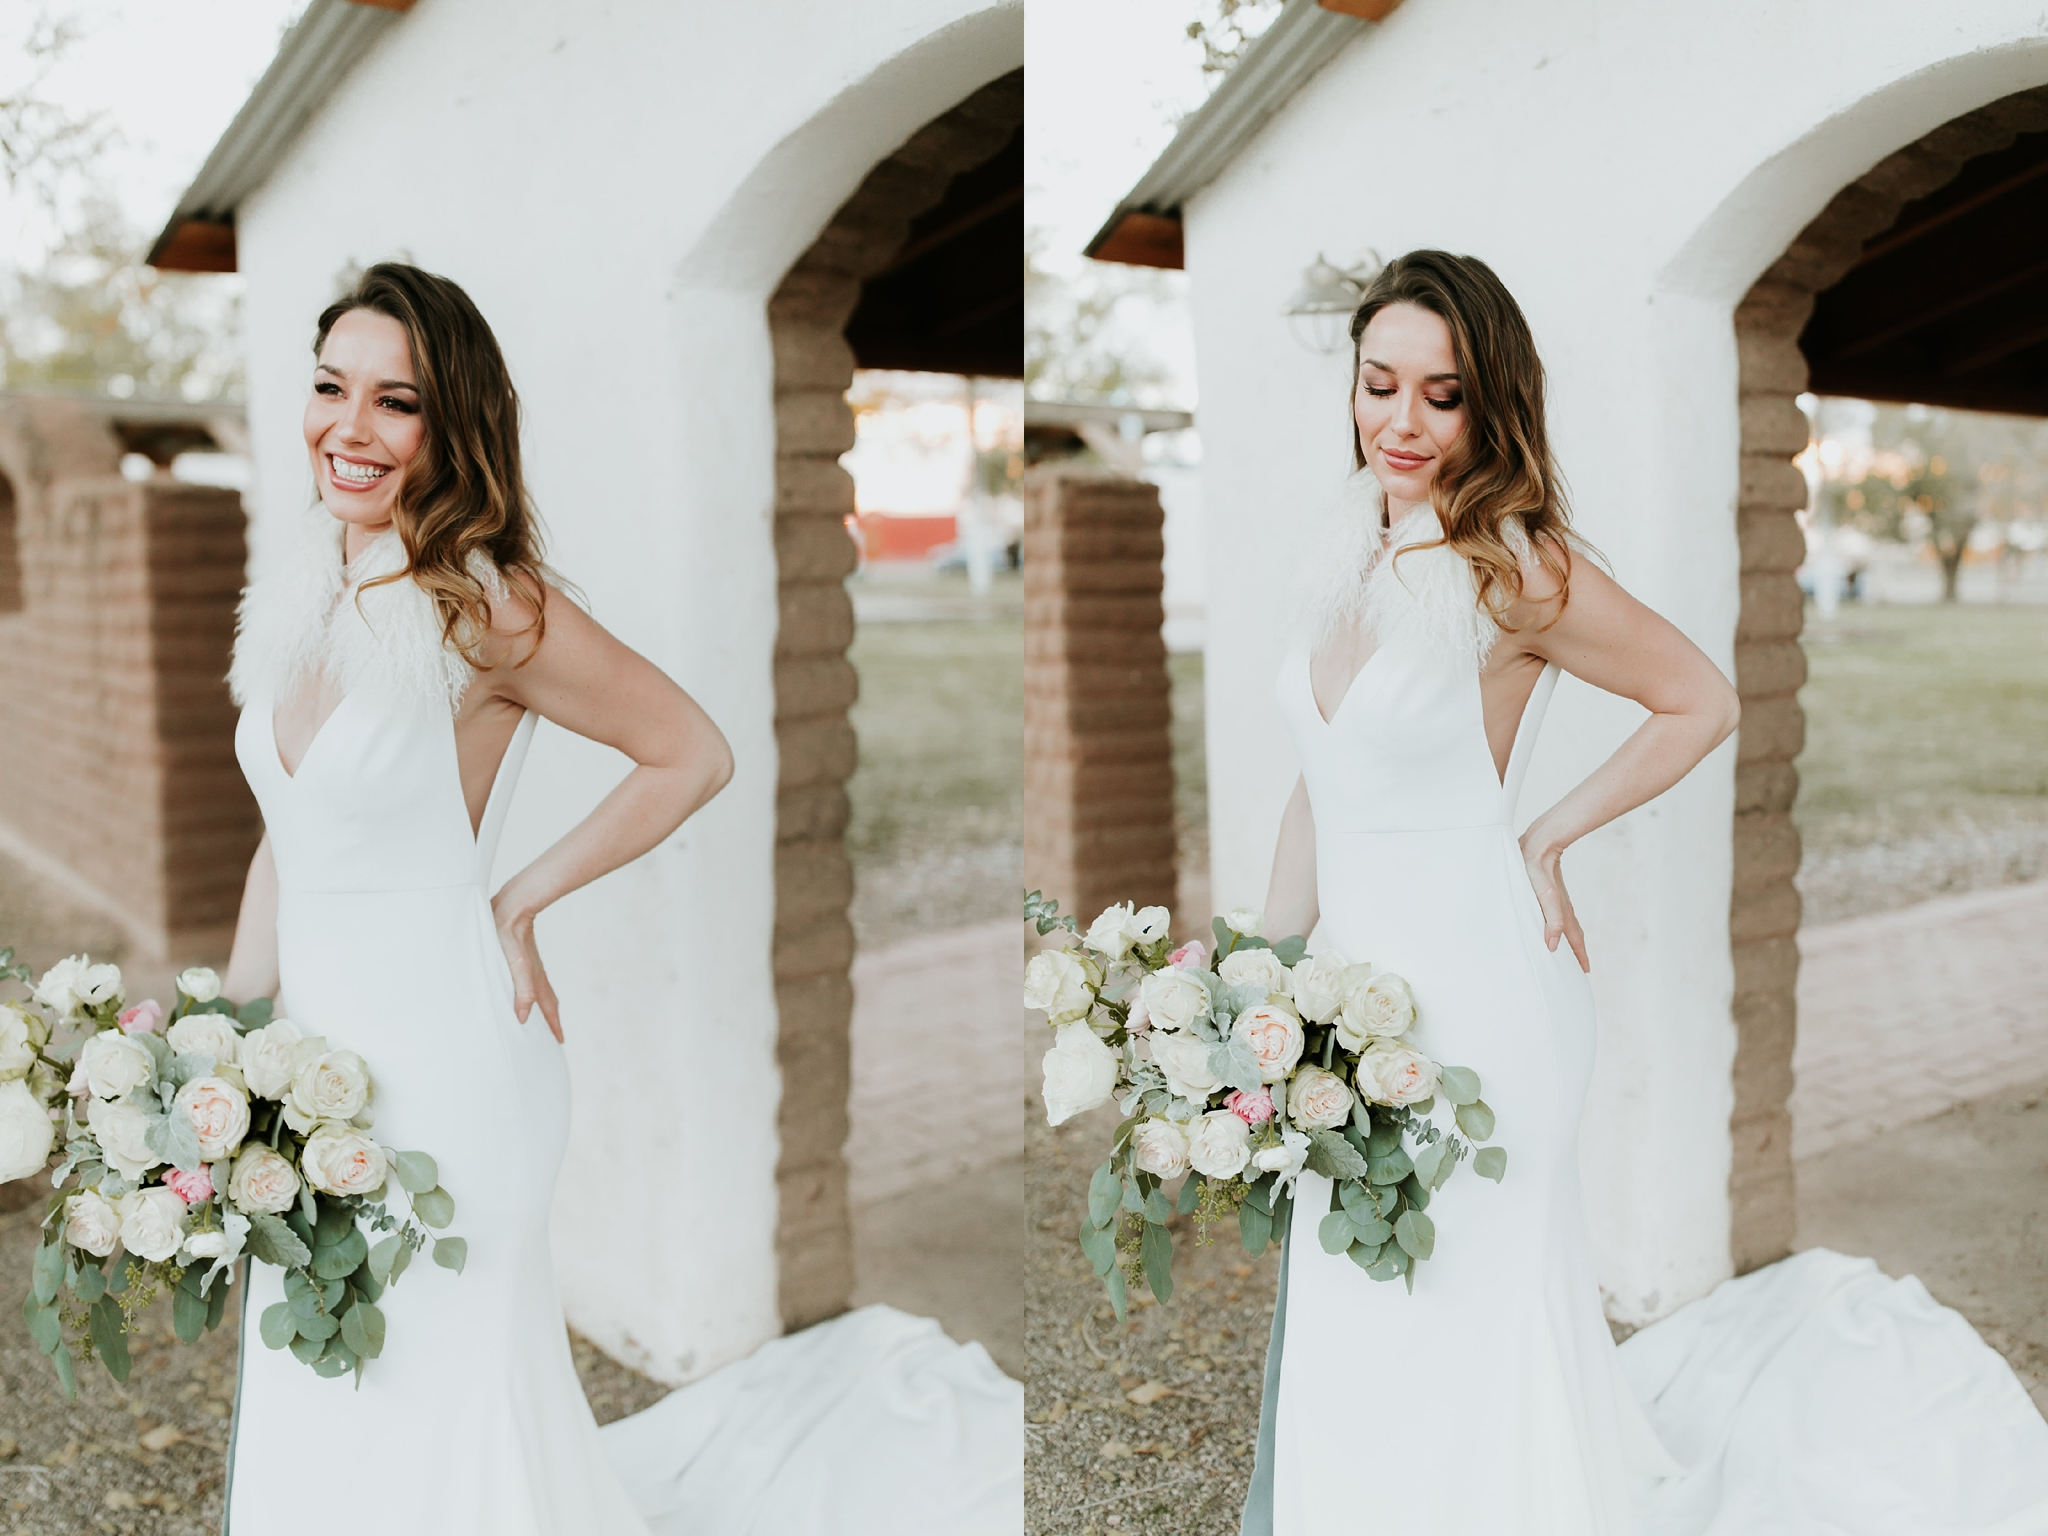 Alicia+lucia+photography+-+albuquerque+wedding+photographer+-+santa+fe+wedding+photography+-+new+mexico+wedding+photographer+-+bridal+shoot+-+styled+bridal+shoot+-+southwest+bride_0015.jpg